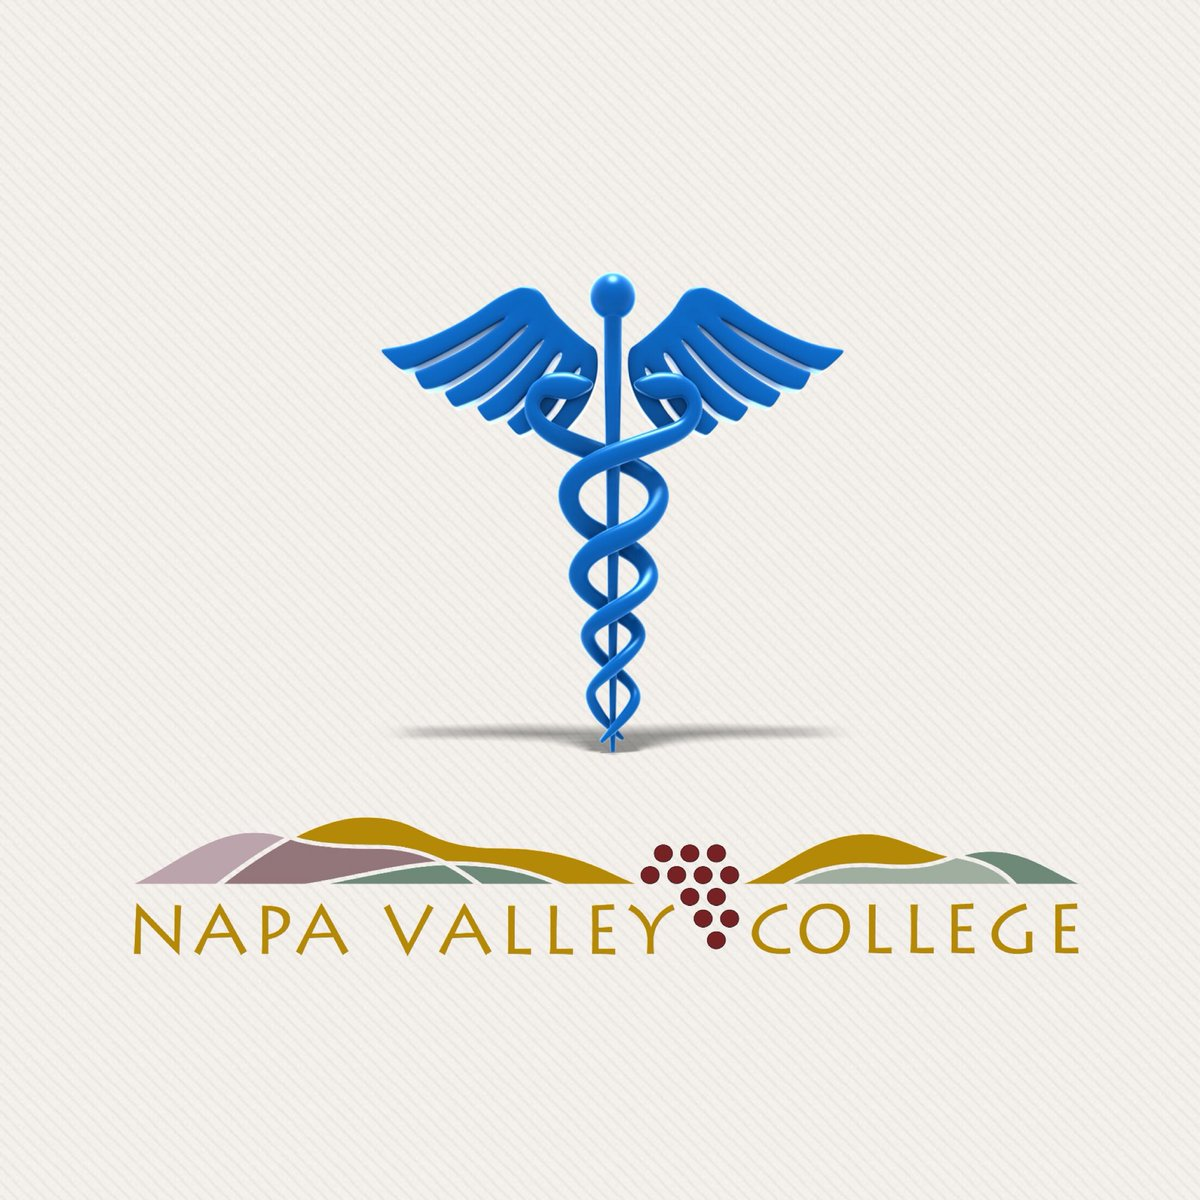 Napa Valley College on Twitter: